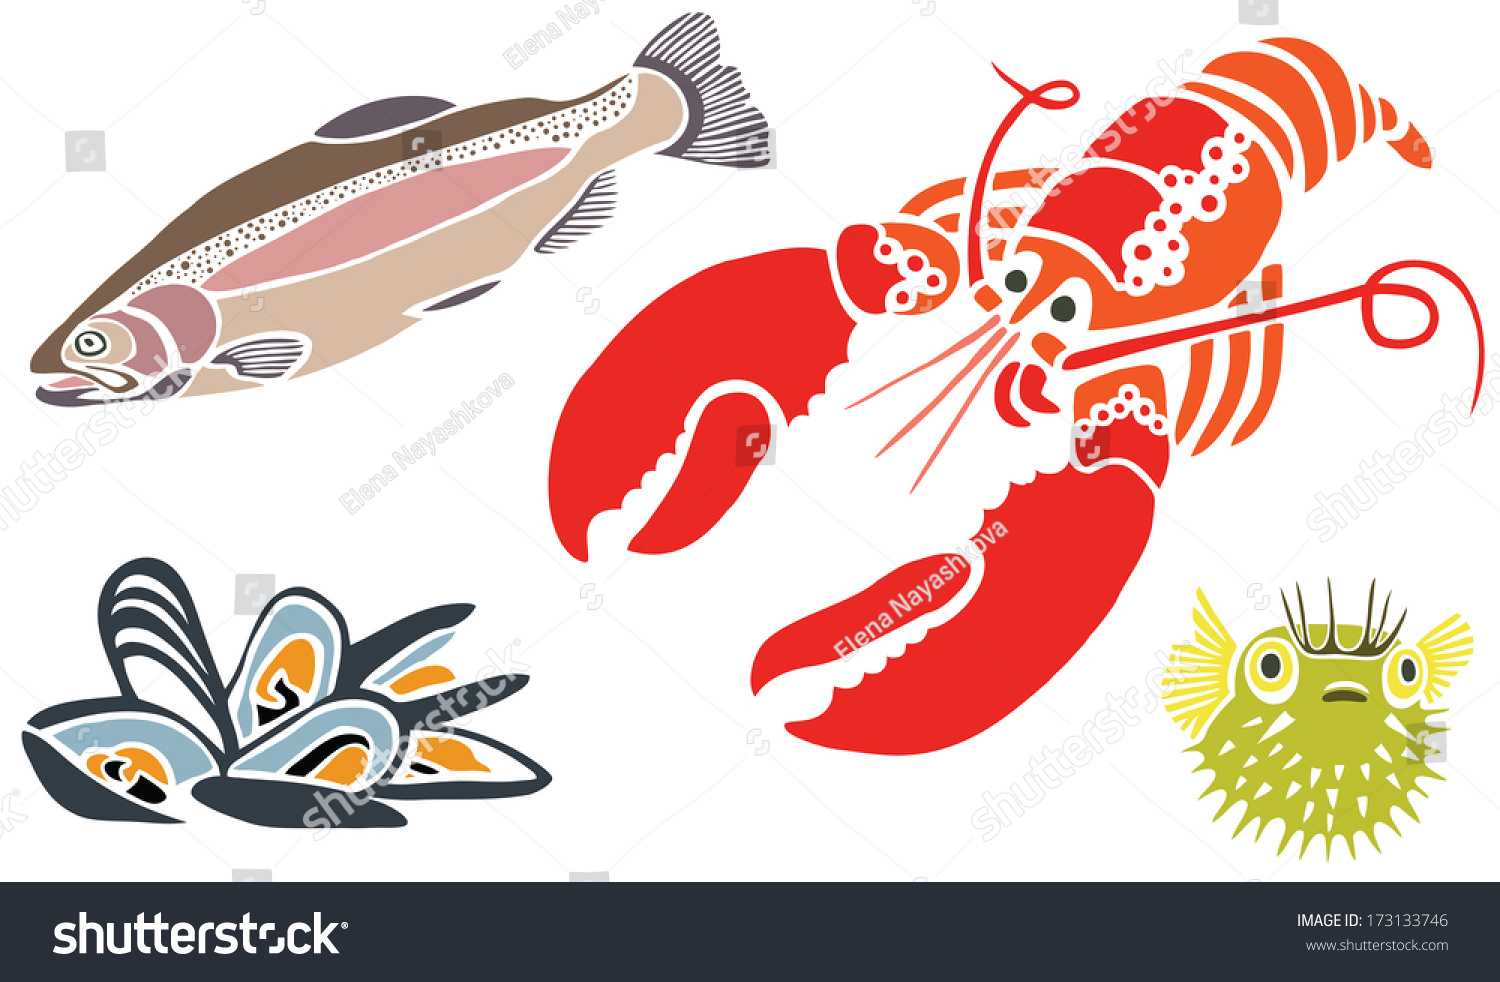 Lobster Muscles Salmon Puffer Fish Stock Illustration 173133746 ...